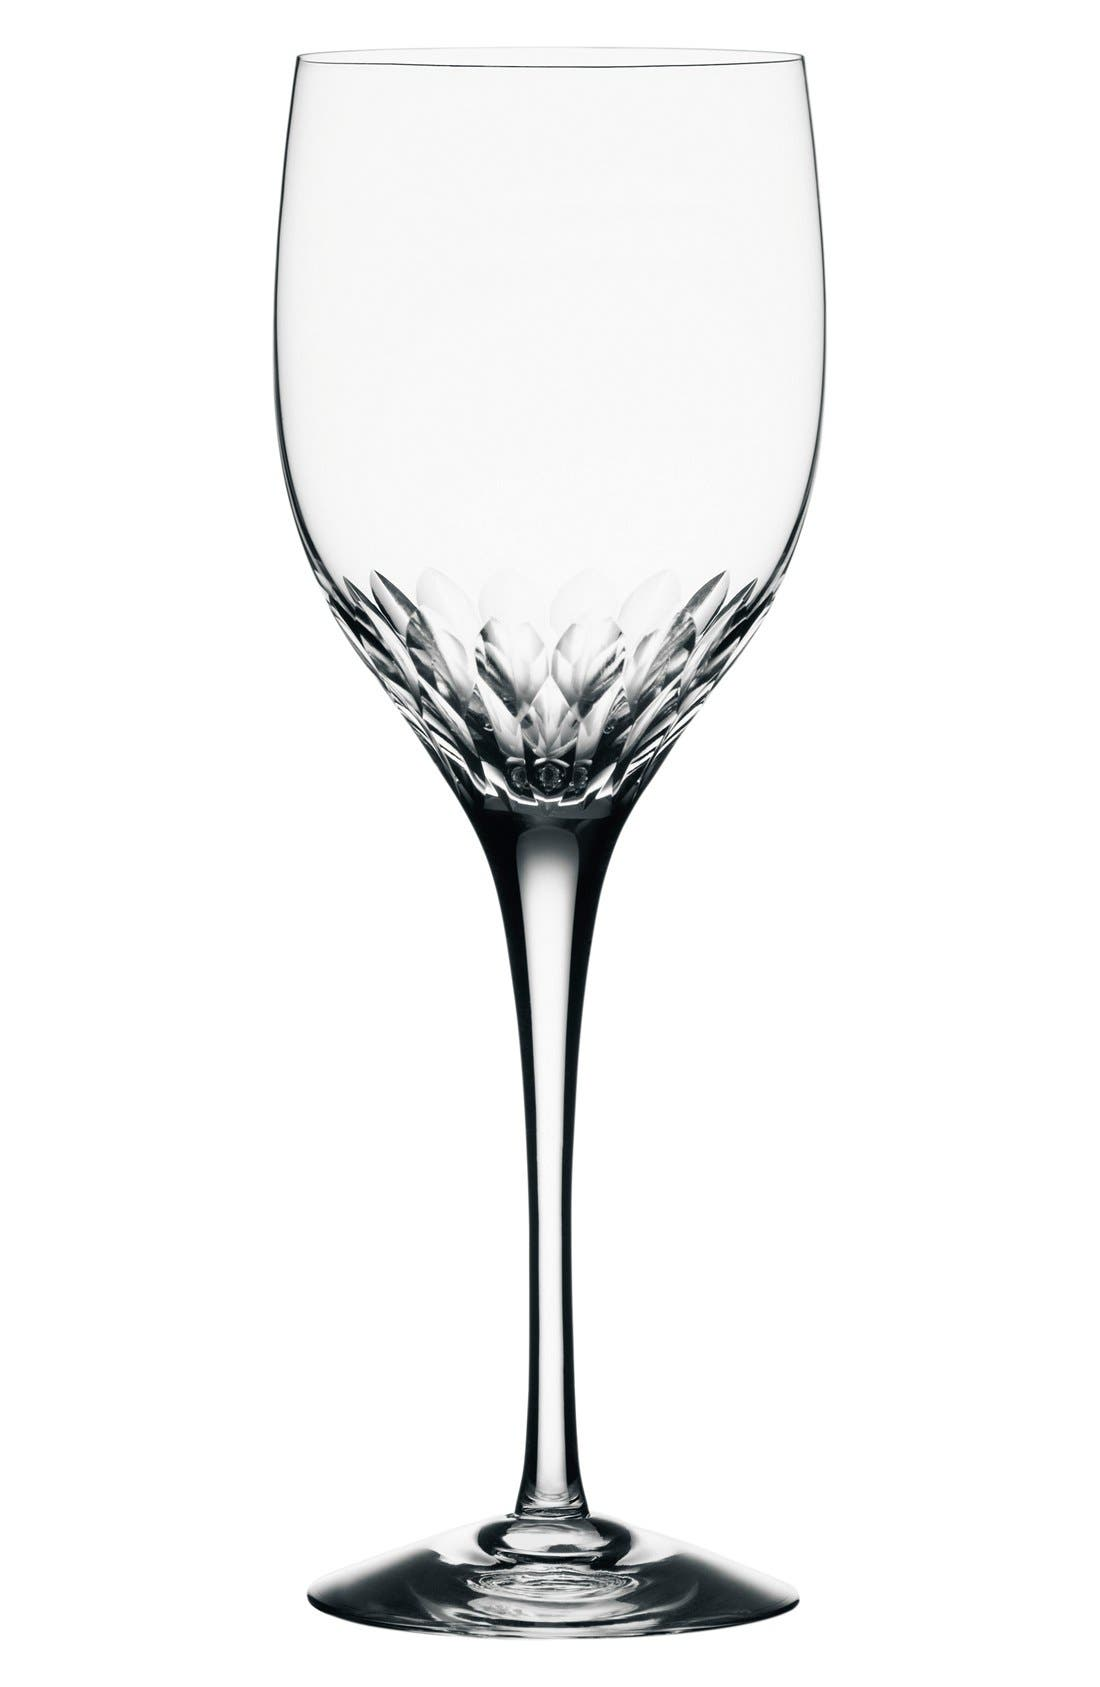 Orrefors 'Prelude' Crystal Claret Glass